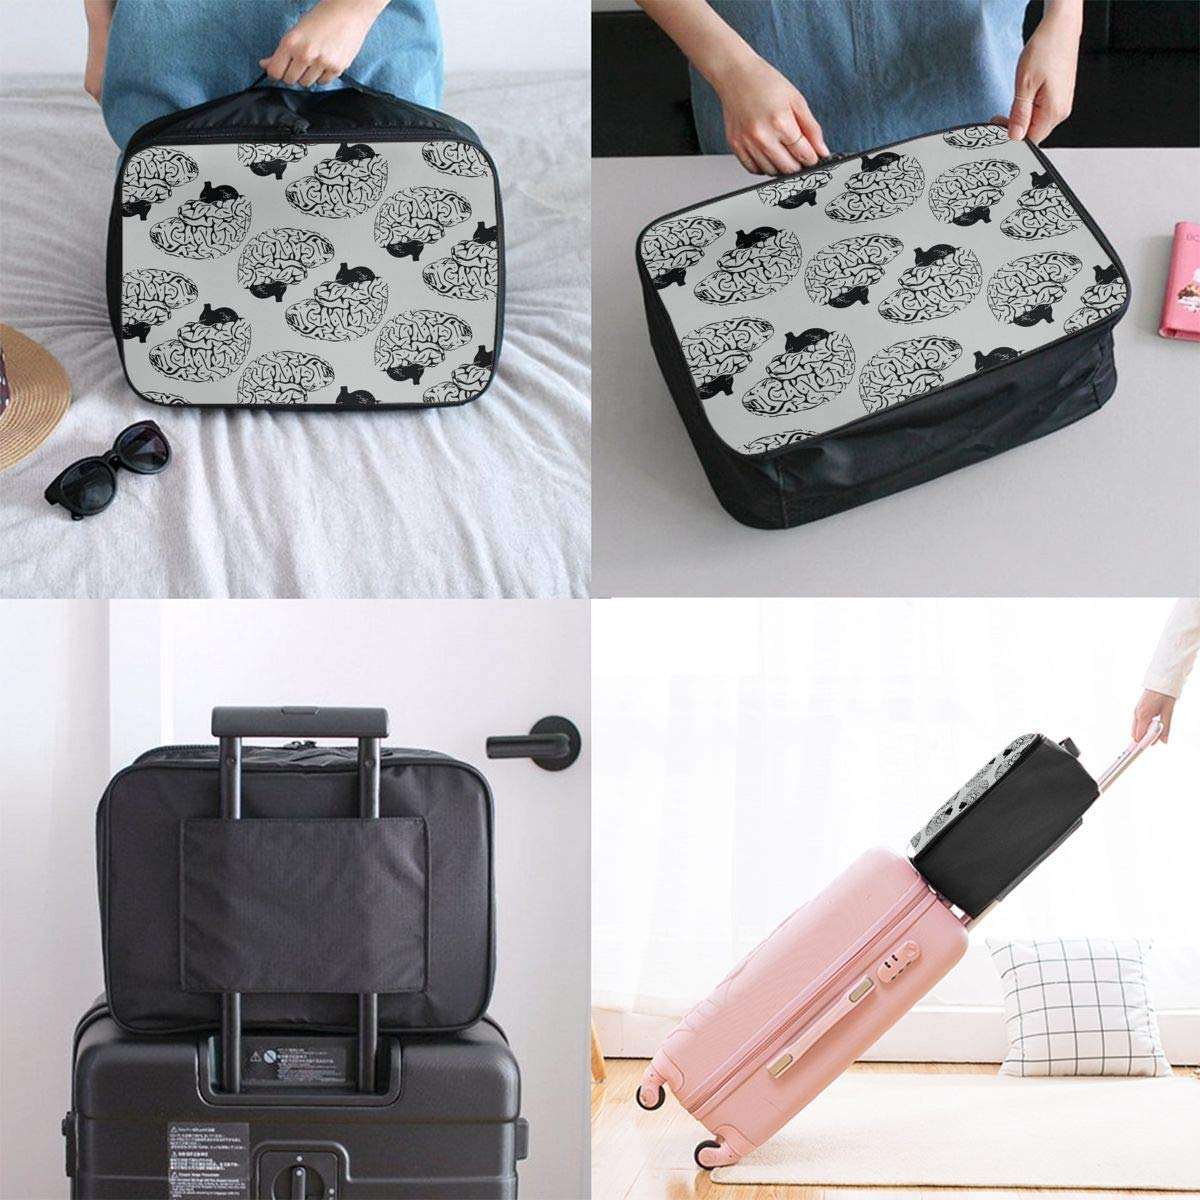 JTRVW Luggage Bags for Travel Gray Matter Brain Travel Lightweight Waterproof Foldable Storage Carry Luggage Duffle Tote Bag